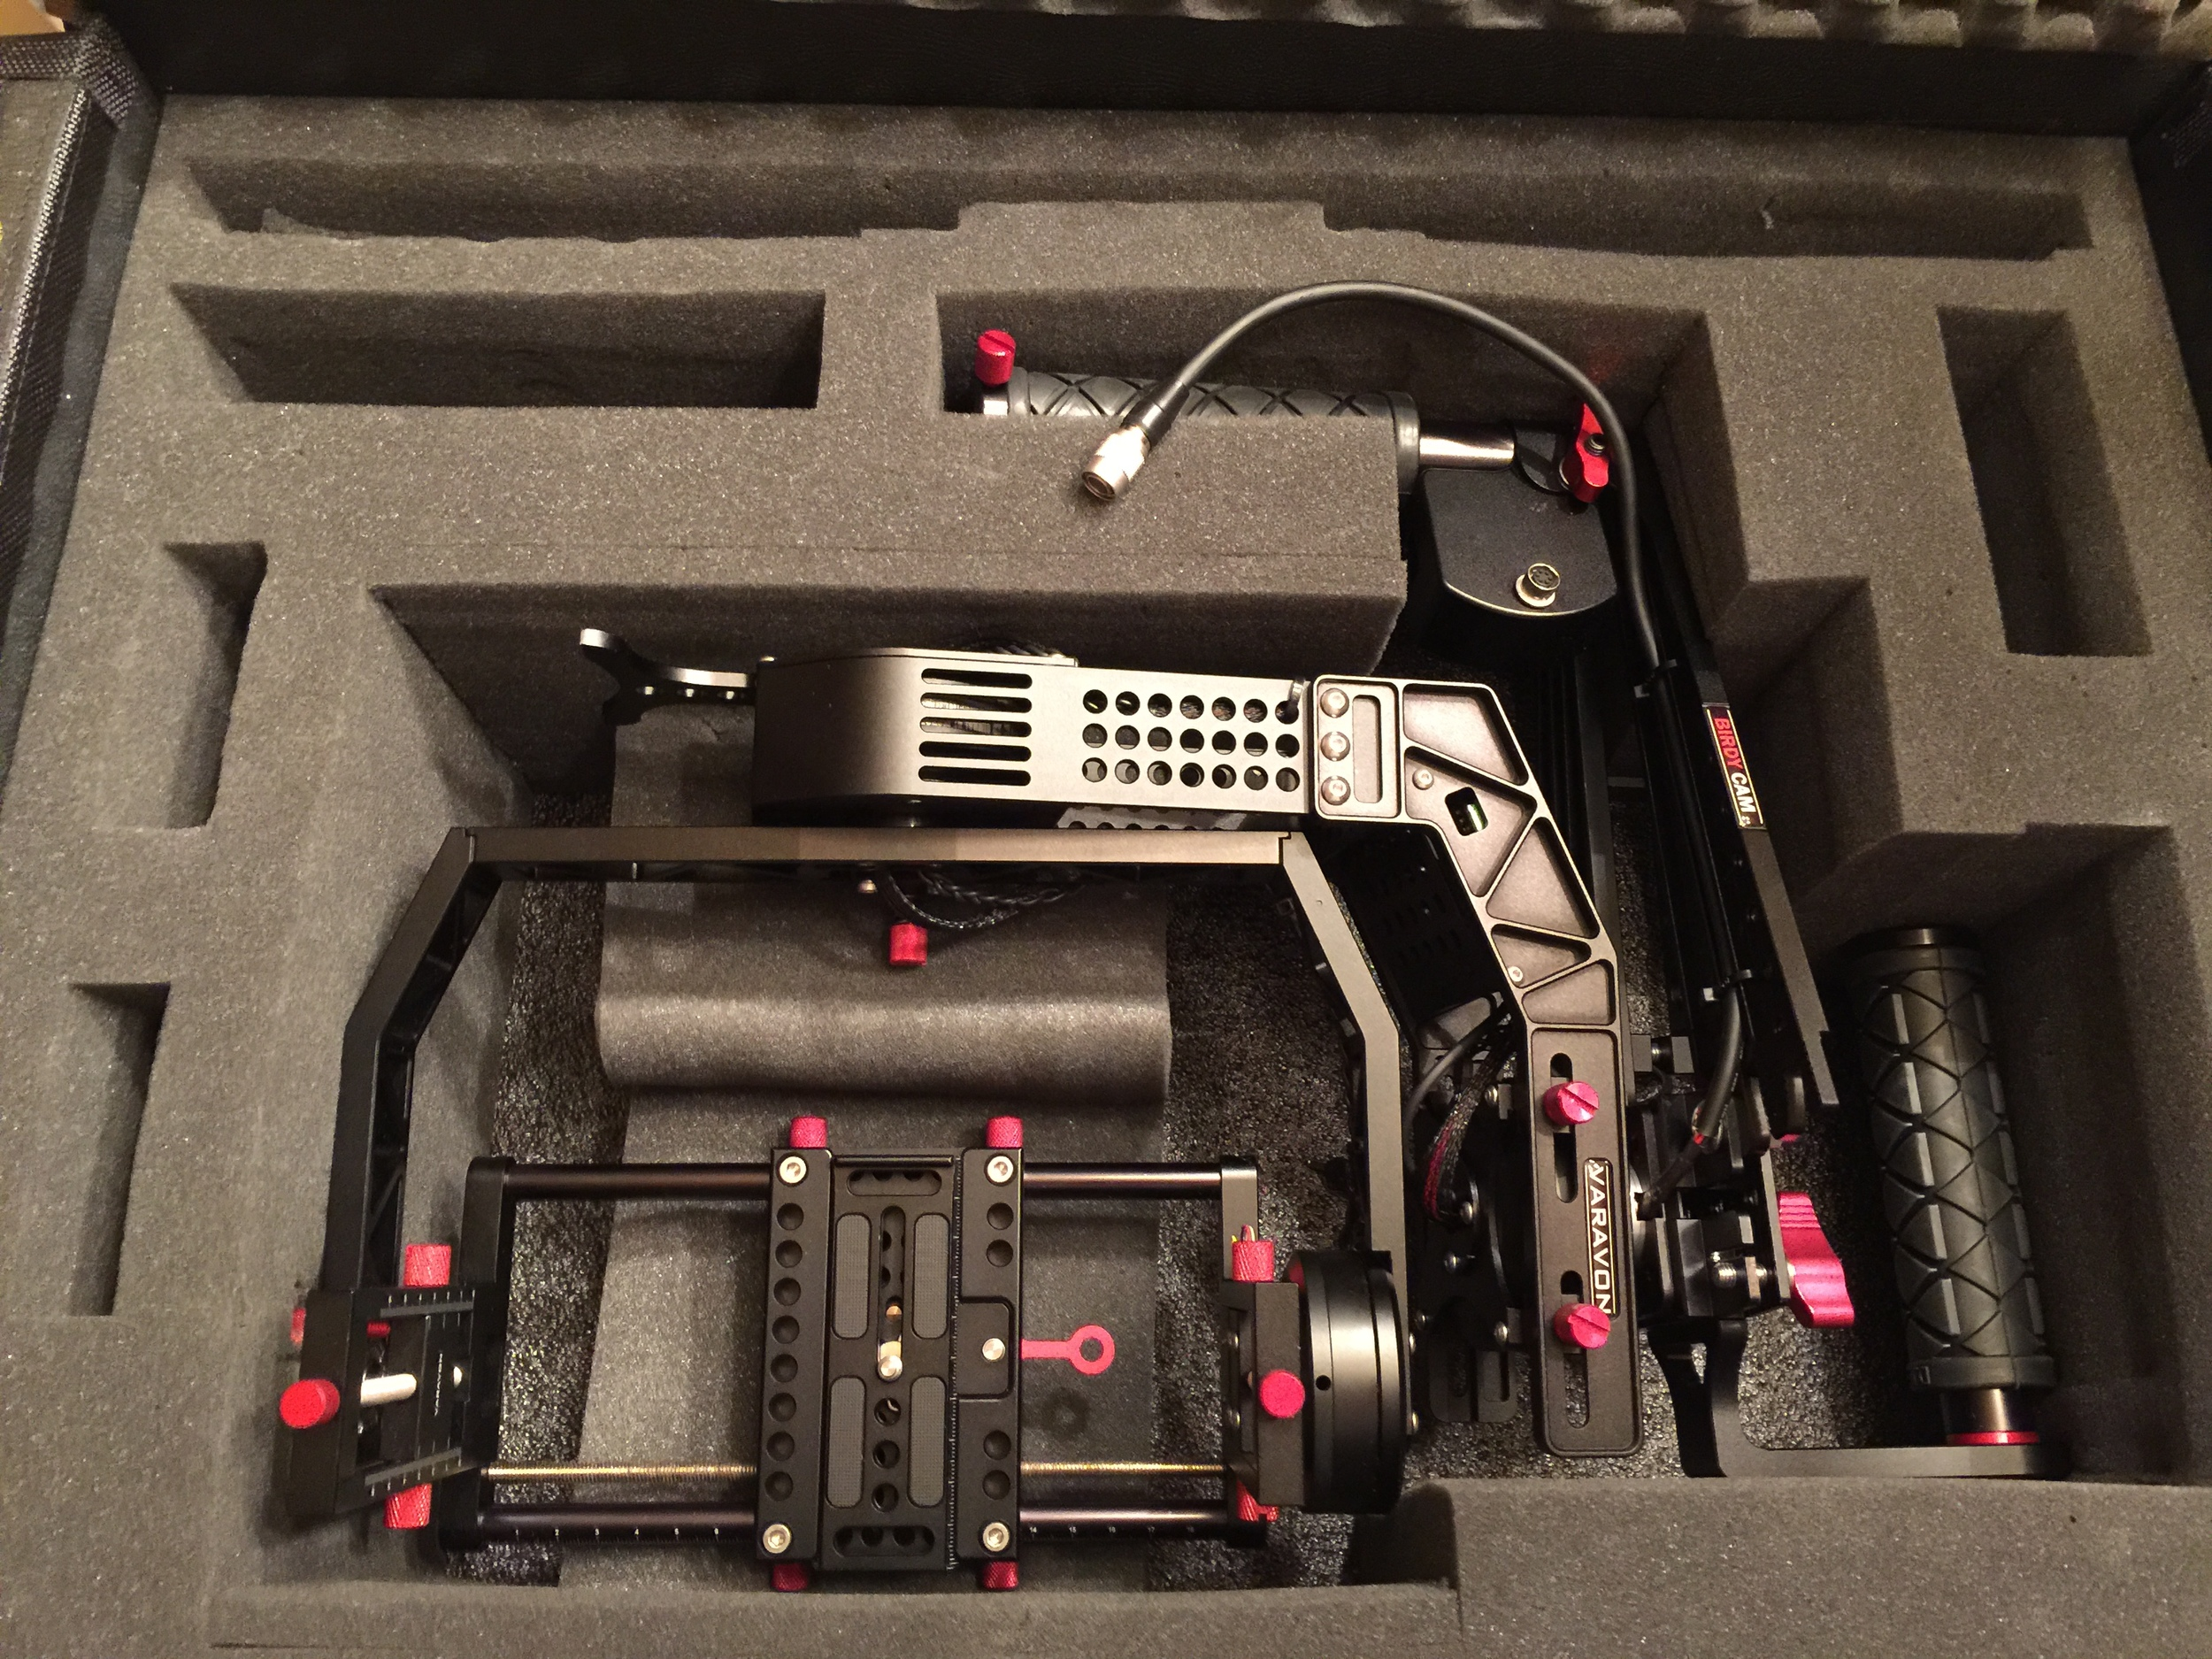 Folded up and ready to go; and I can mount the Atomos Shogun to get 4k from the Sony A7S on it. Very nice.